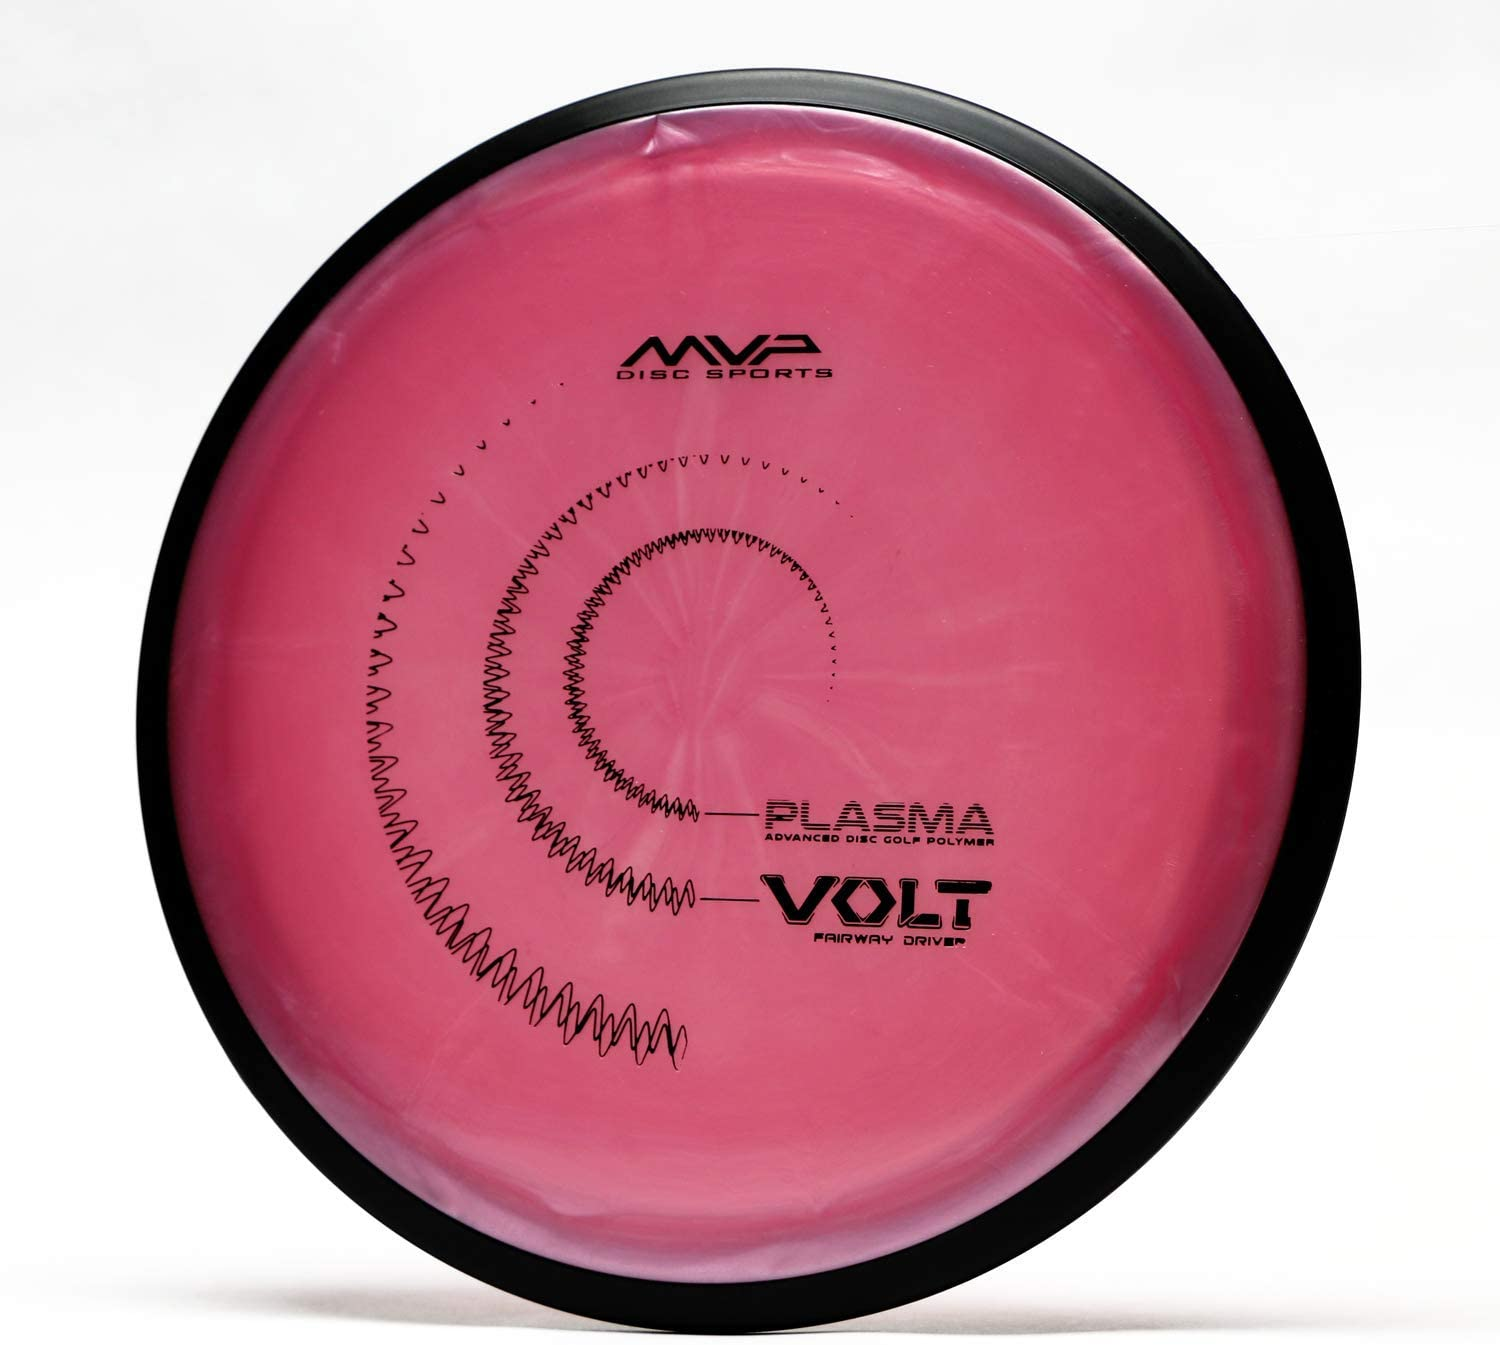 MVP Disc Sports Plasma Volt Colors 4 years warranty Indefinitely Driver Vary May Golf